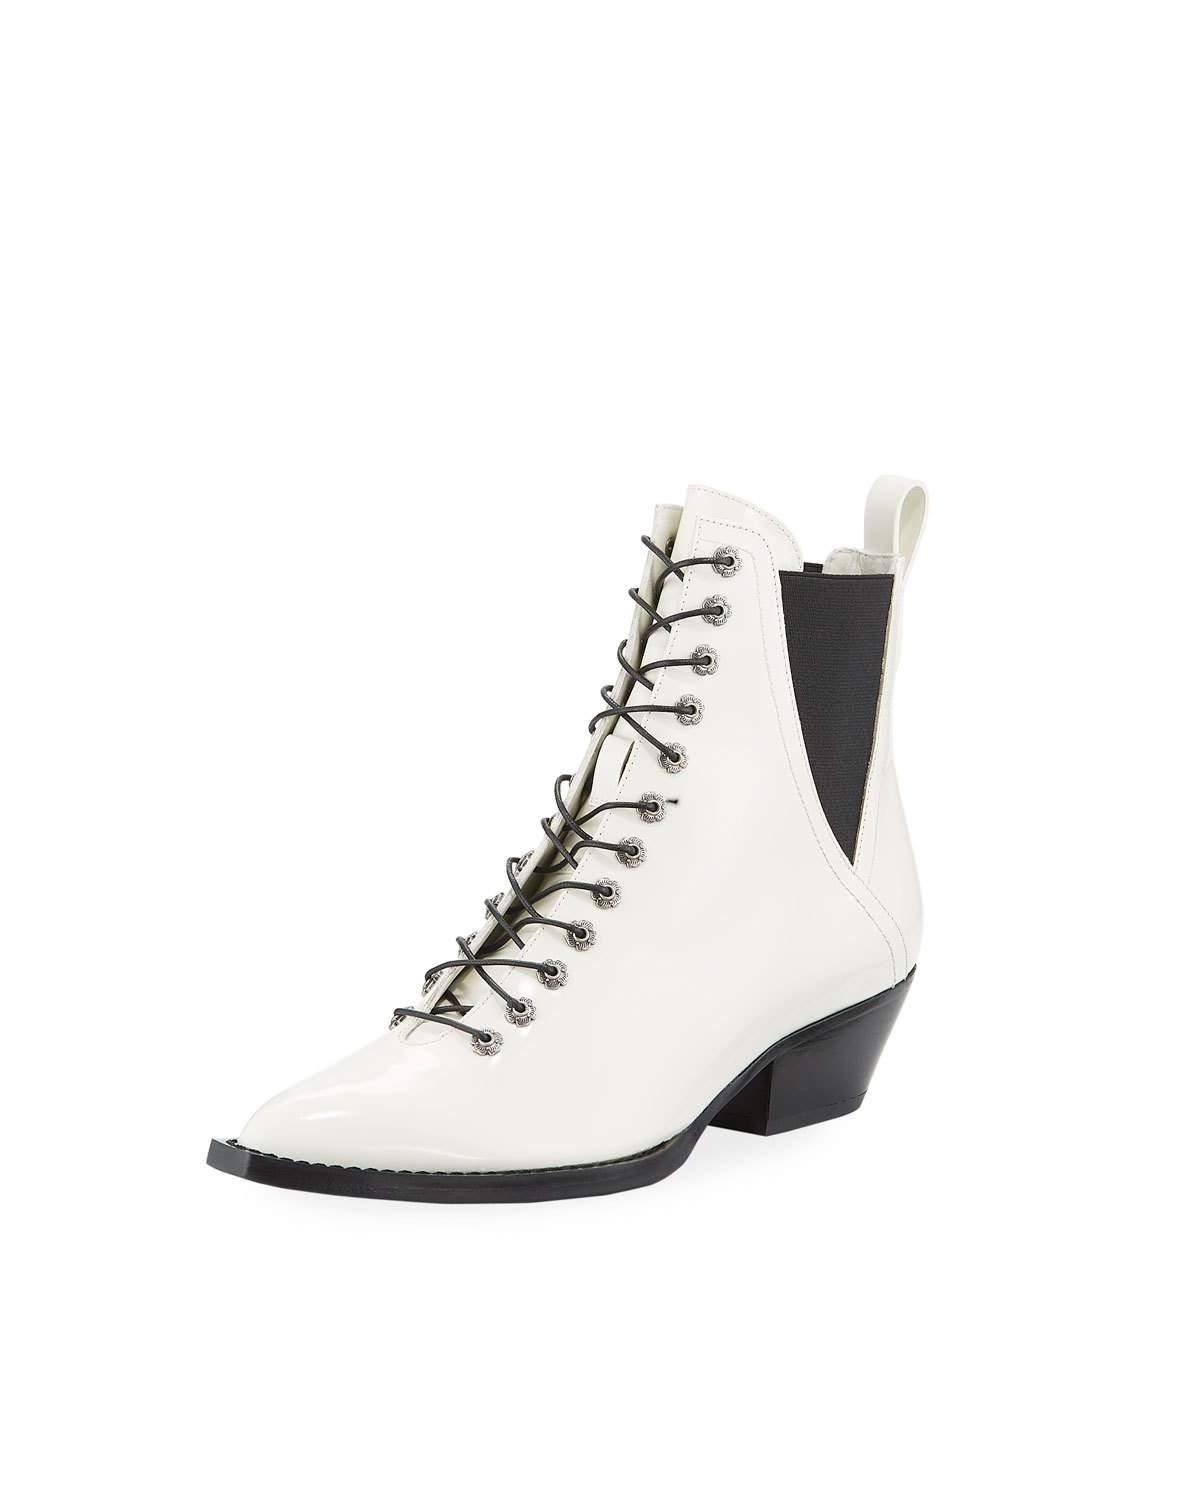 ac78b7ba17 Spazzolato Leather Lace-Up Booties in Ivory